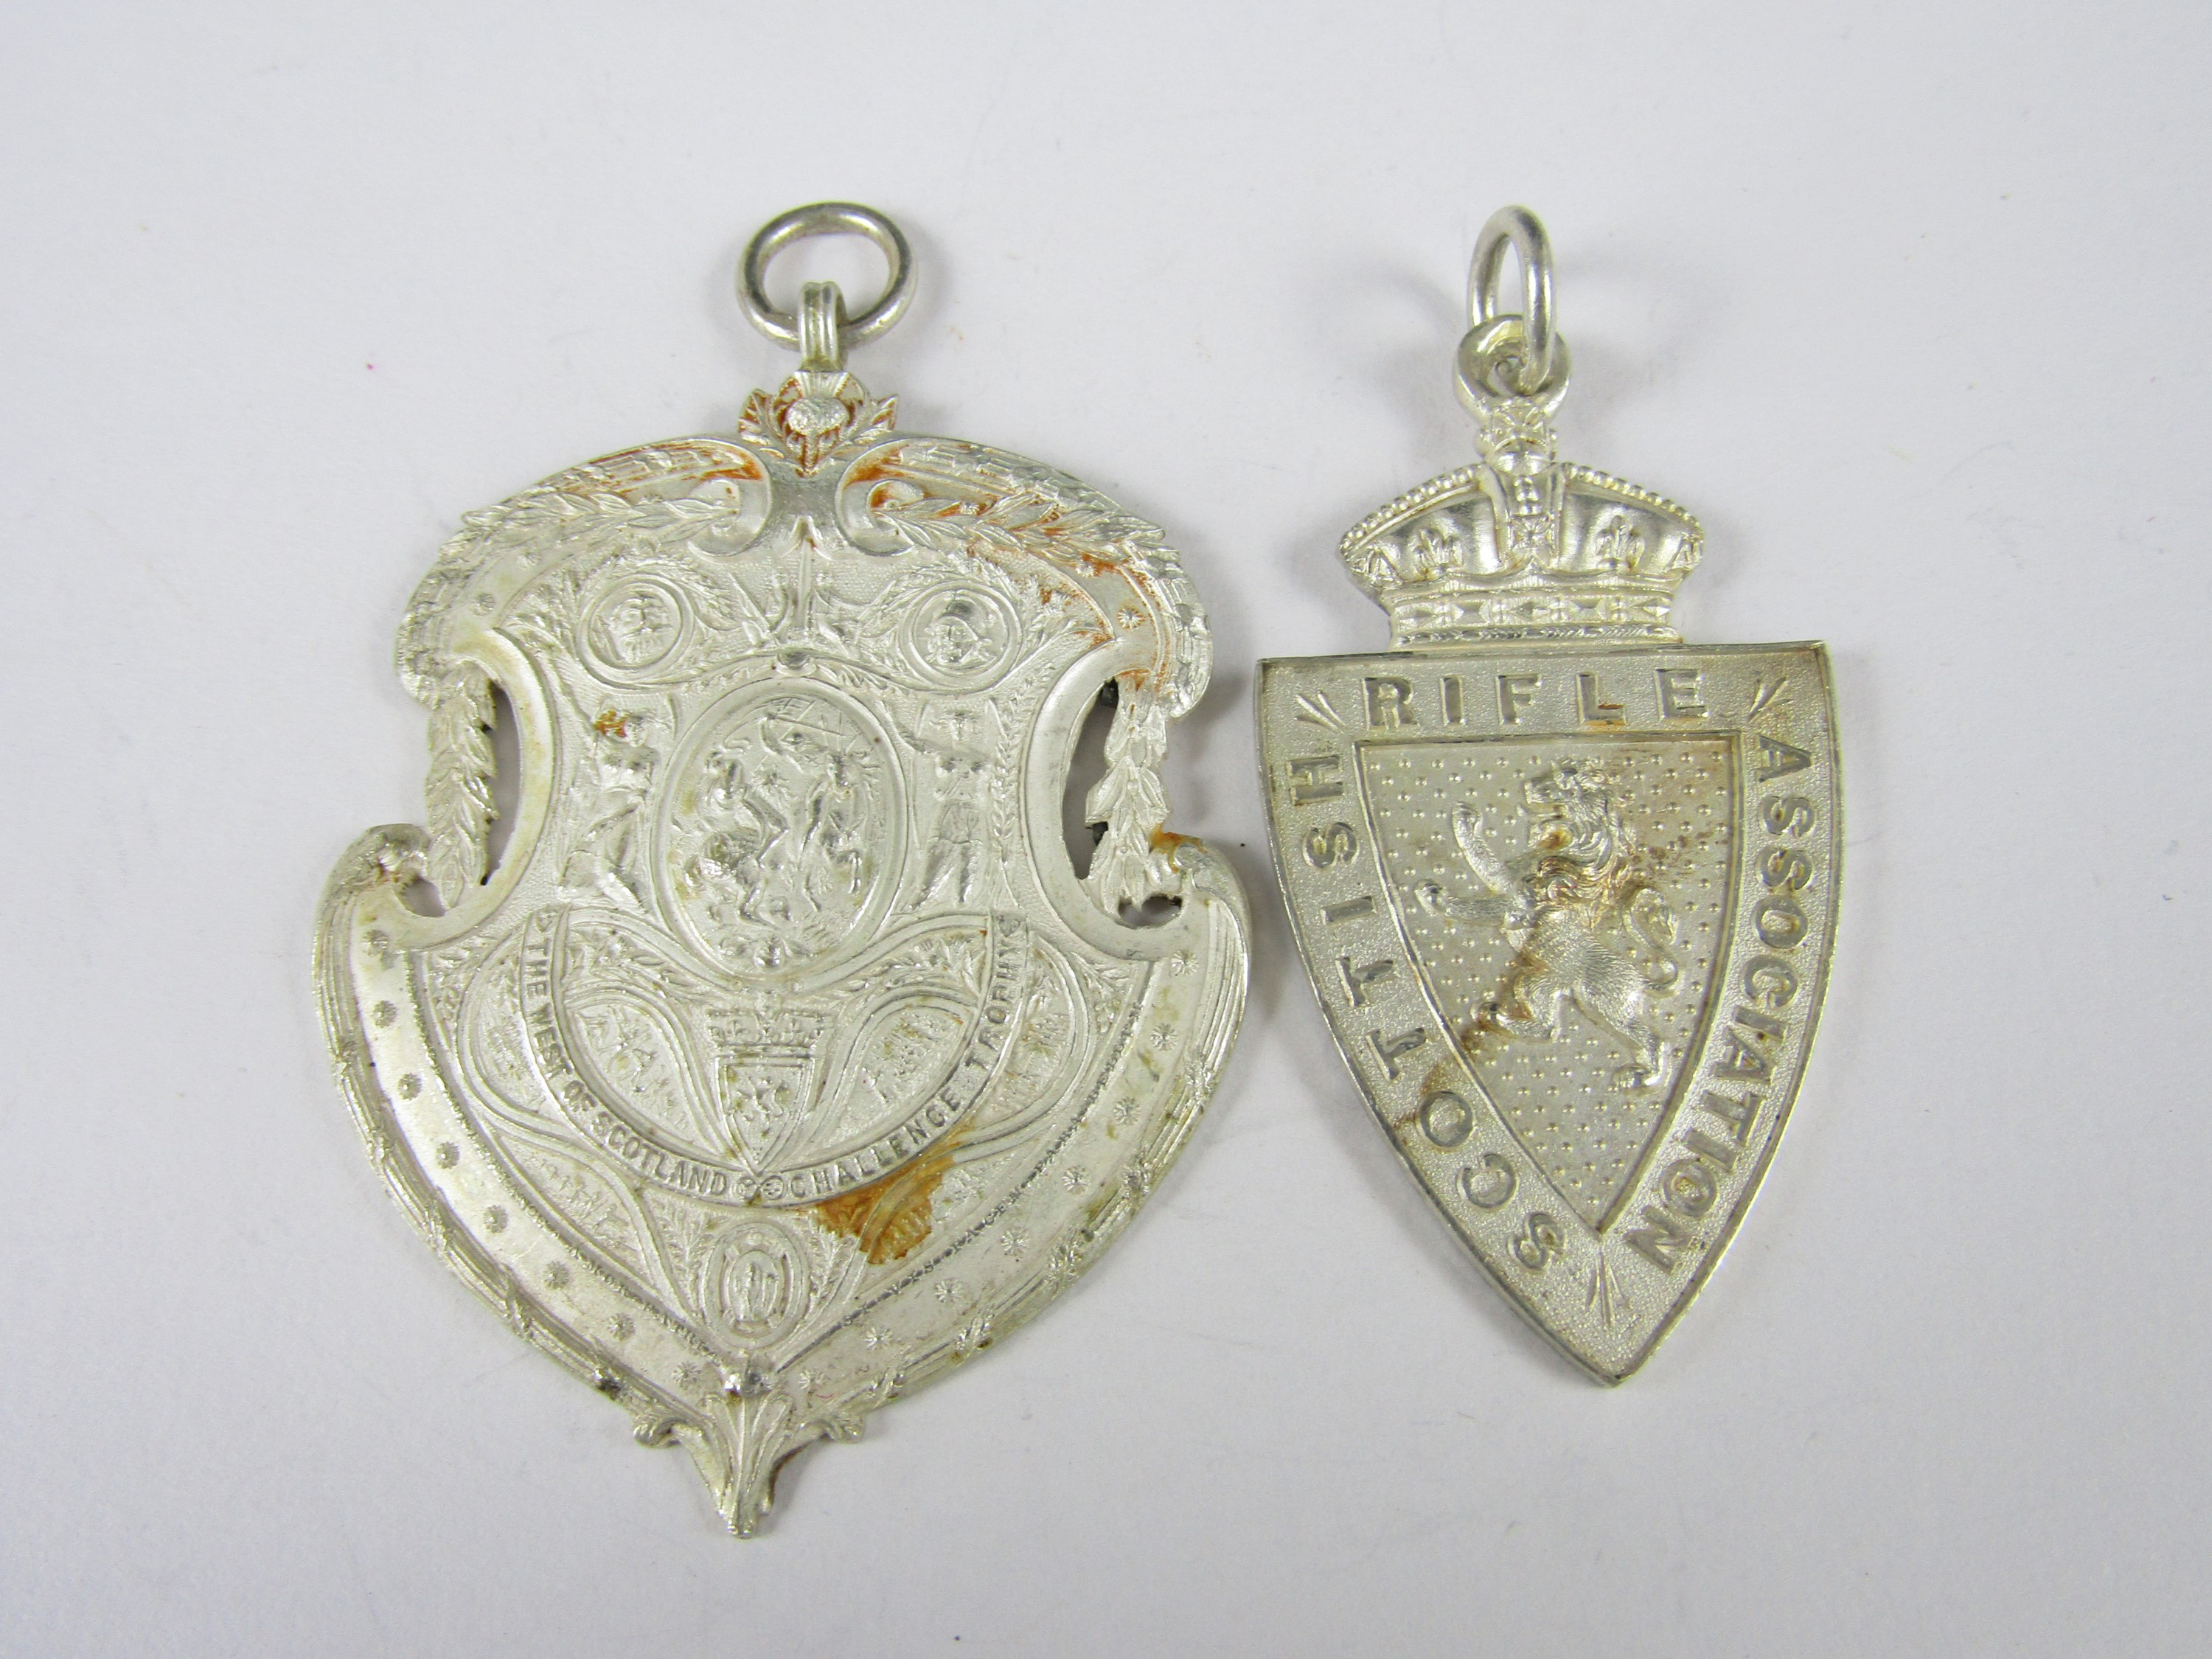 Lot 45 - A Victorian Scottish Rifle Association silver prize fob medallion, together with a contemporary